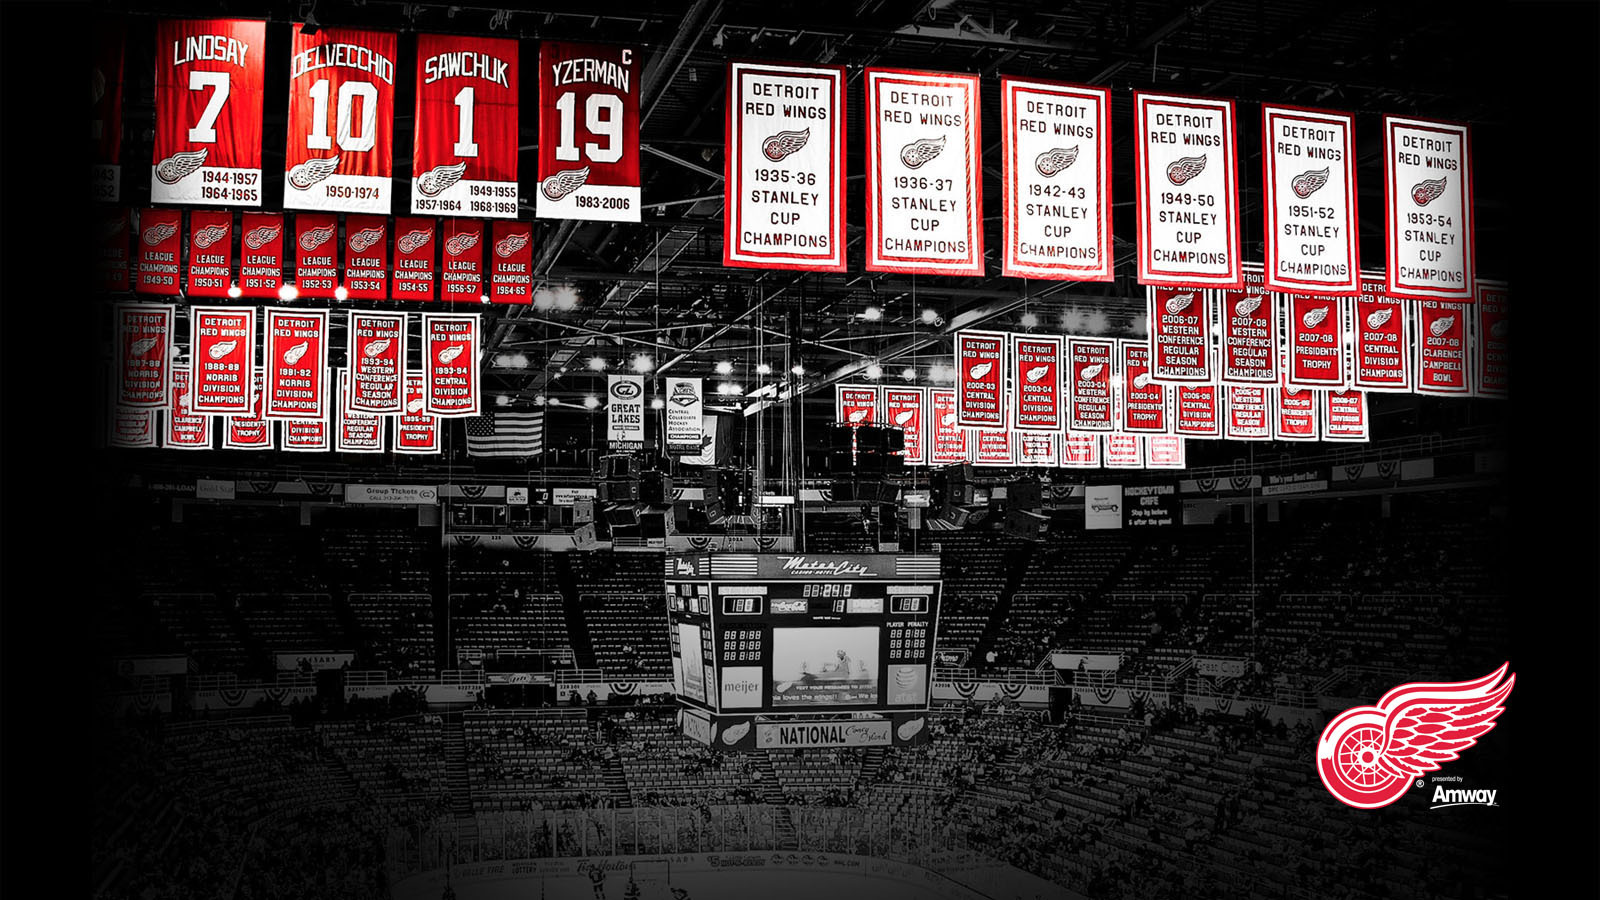 [Image: WP_RedWingsBanners_1600x900.jpg]